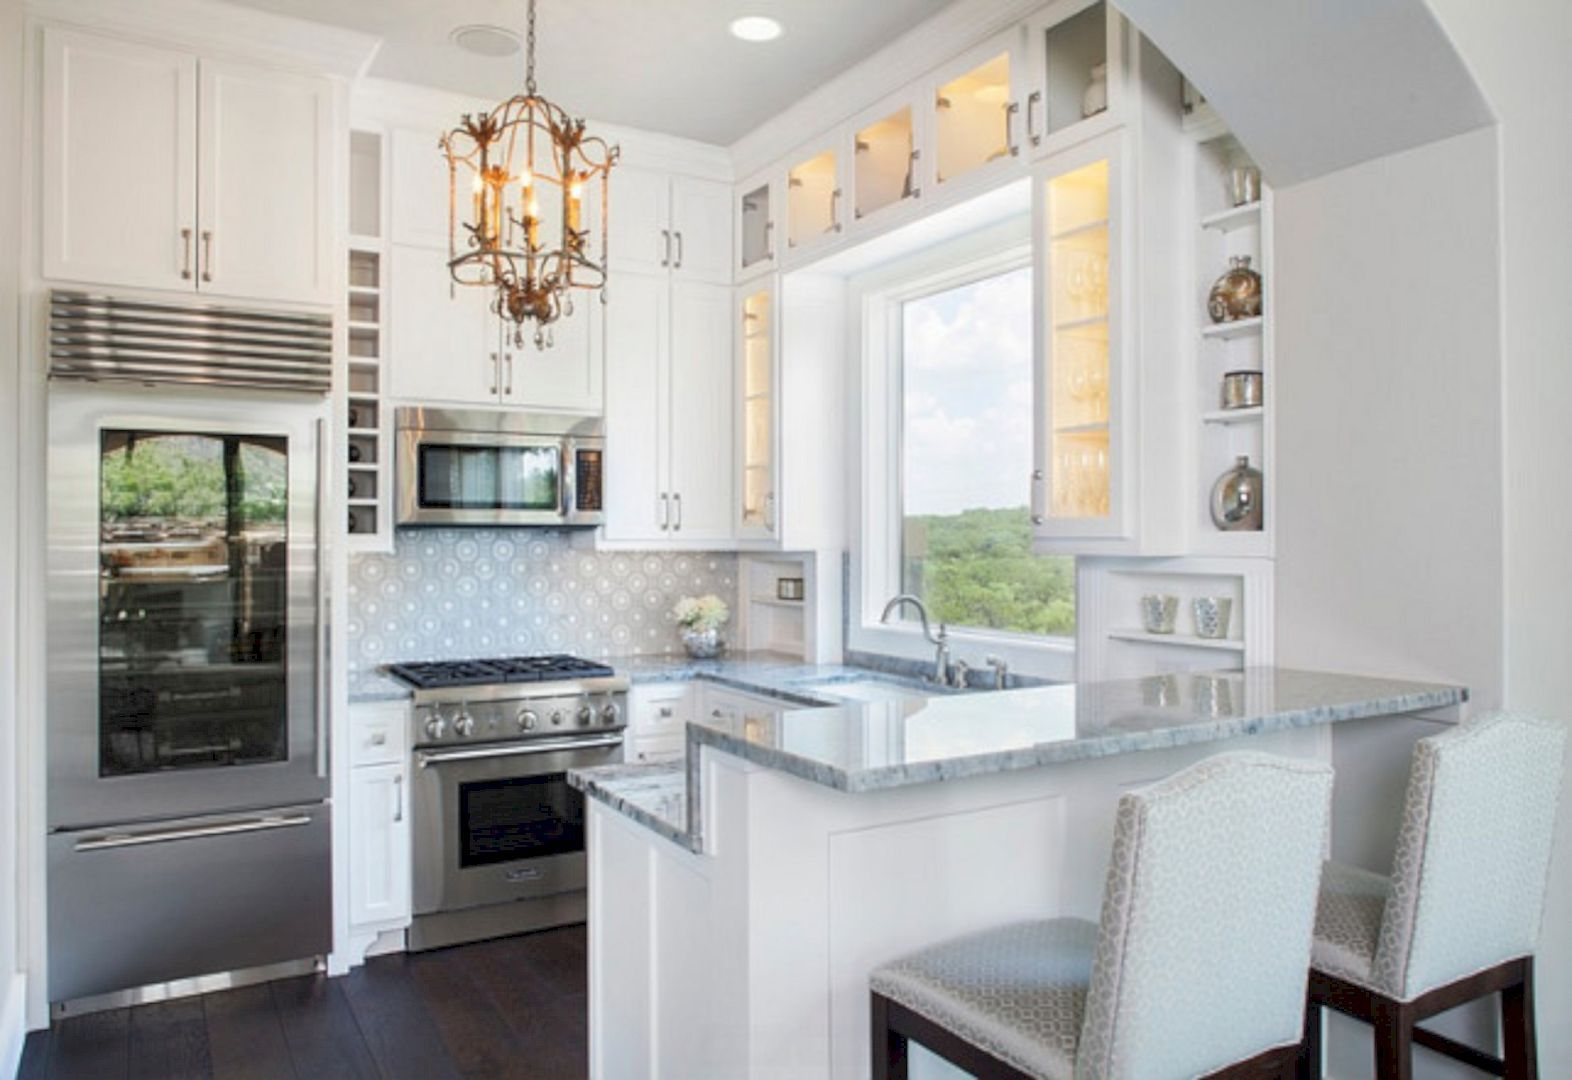 Top 7 Kitchen Organization Tips for Small House | House ...